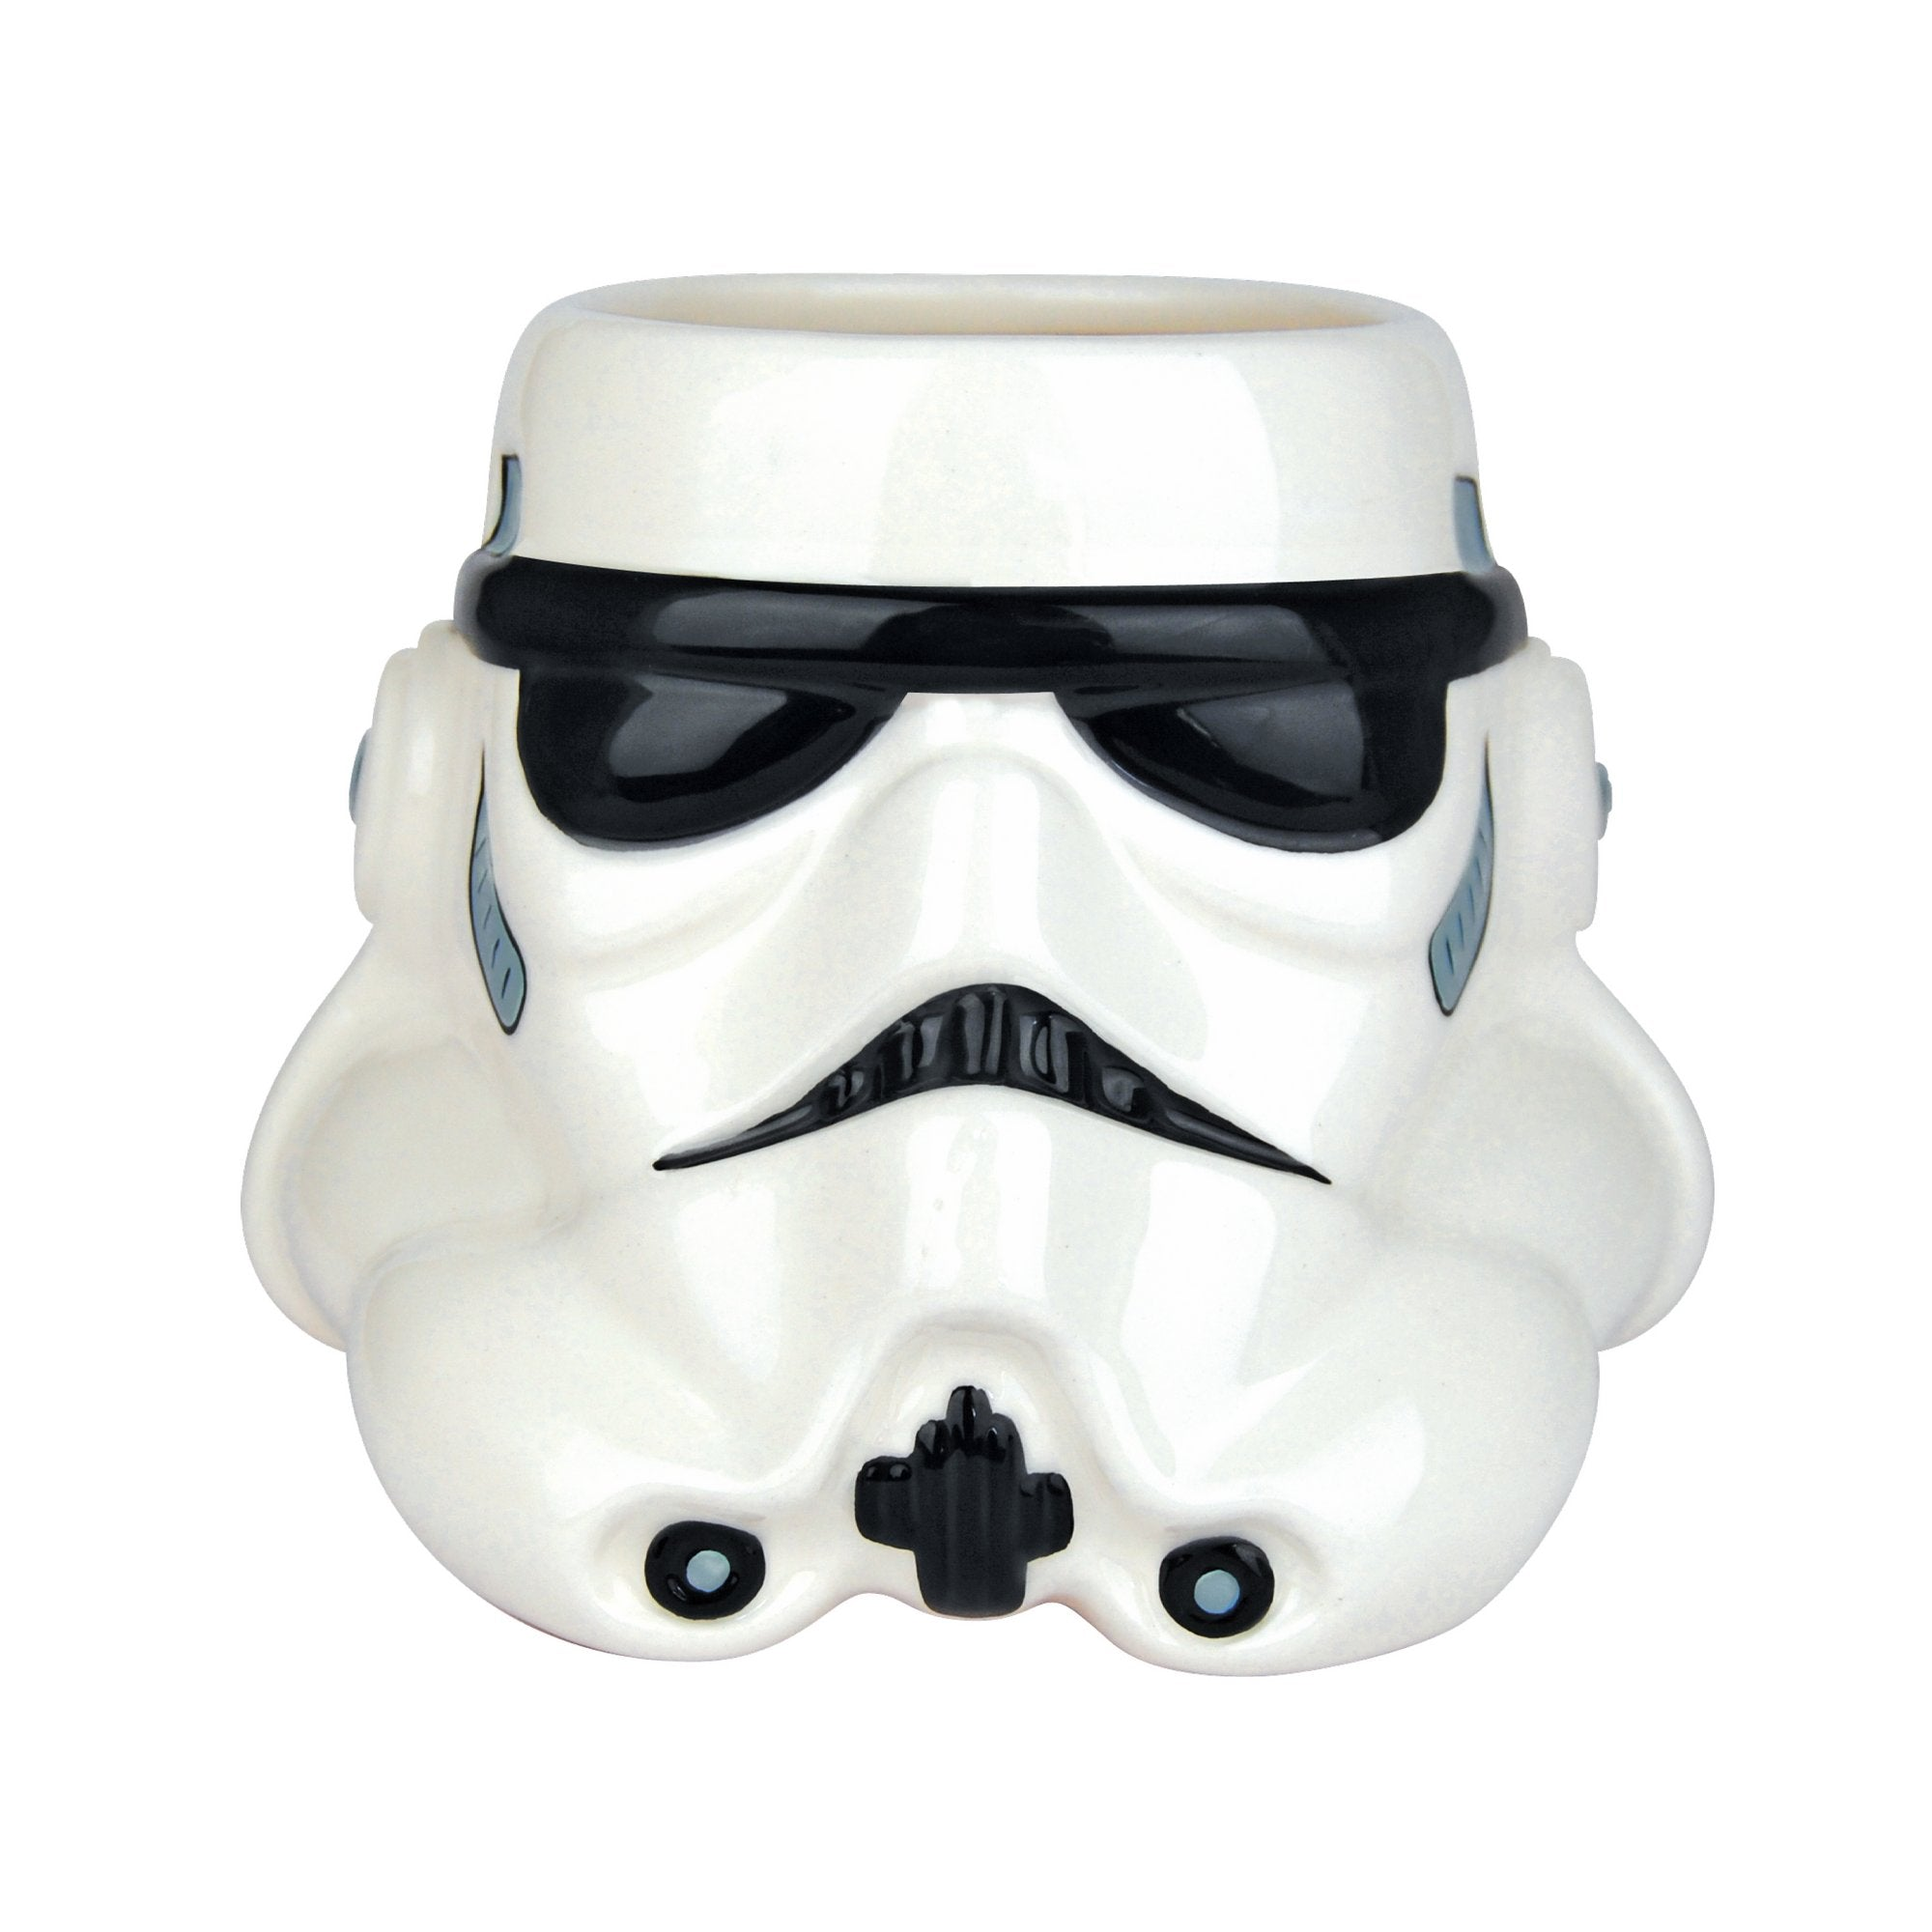 Star Wars Mini Mug - Stormtrooper